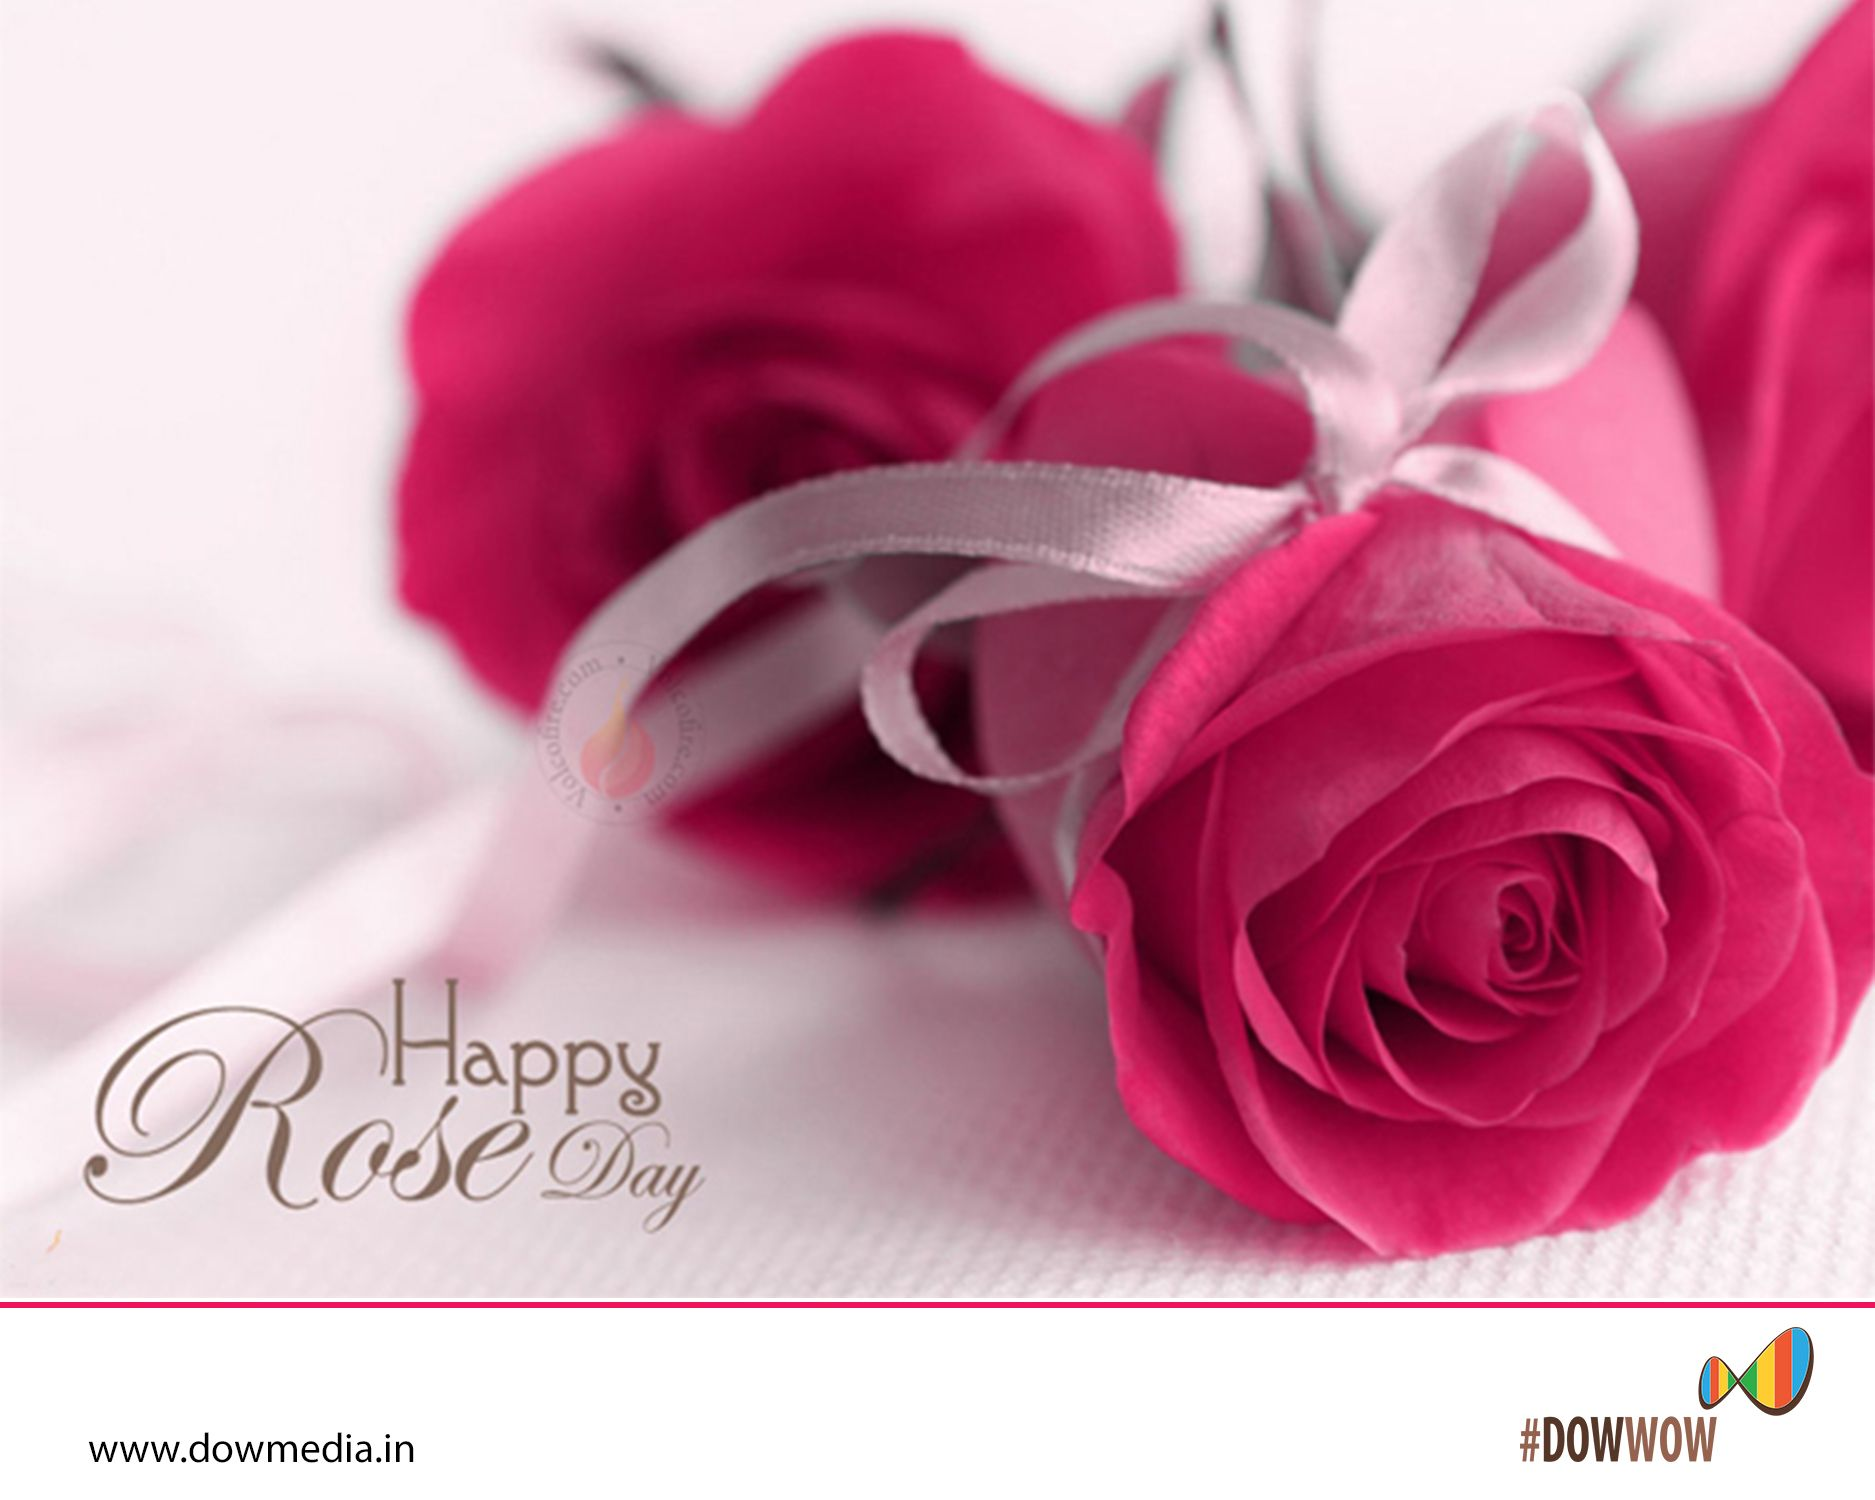 Rose is not only a flower it is a symbol of love it indicates rose is not only a flower it is a symbol of love it indicates biocorpaavc Images